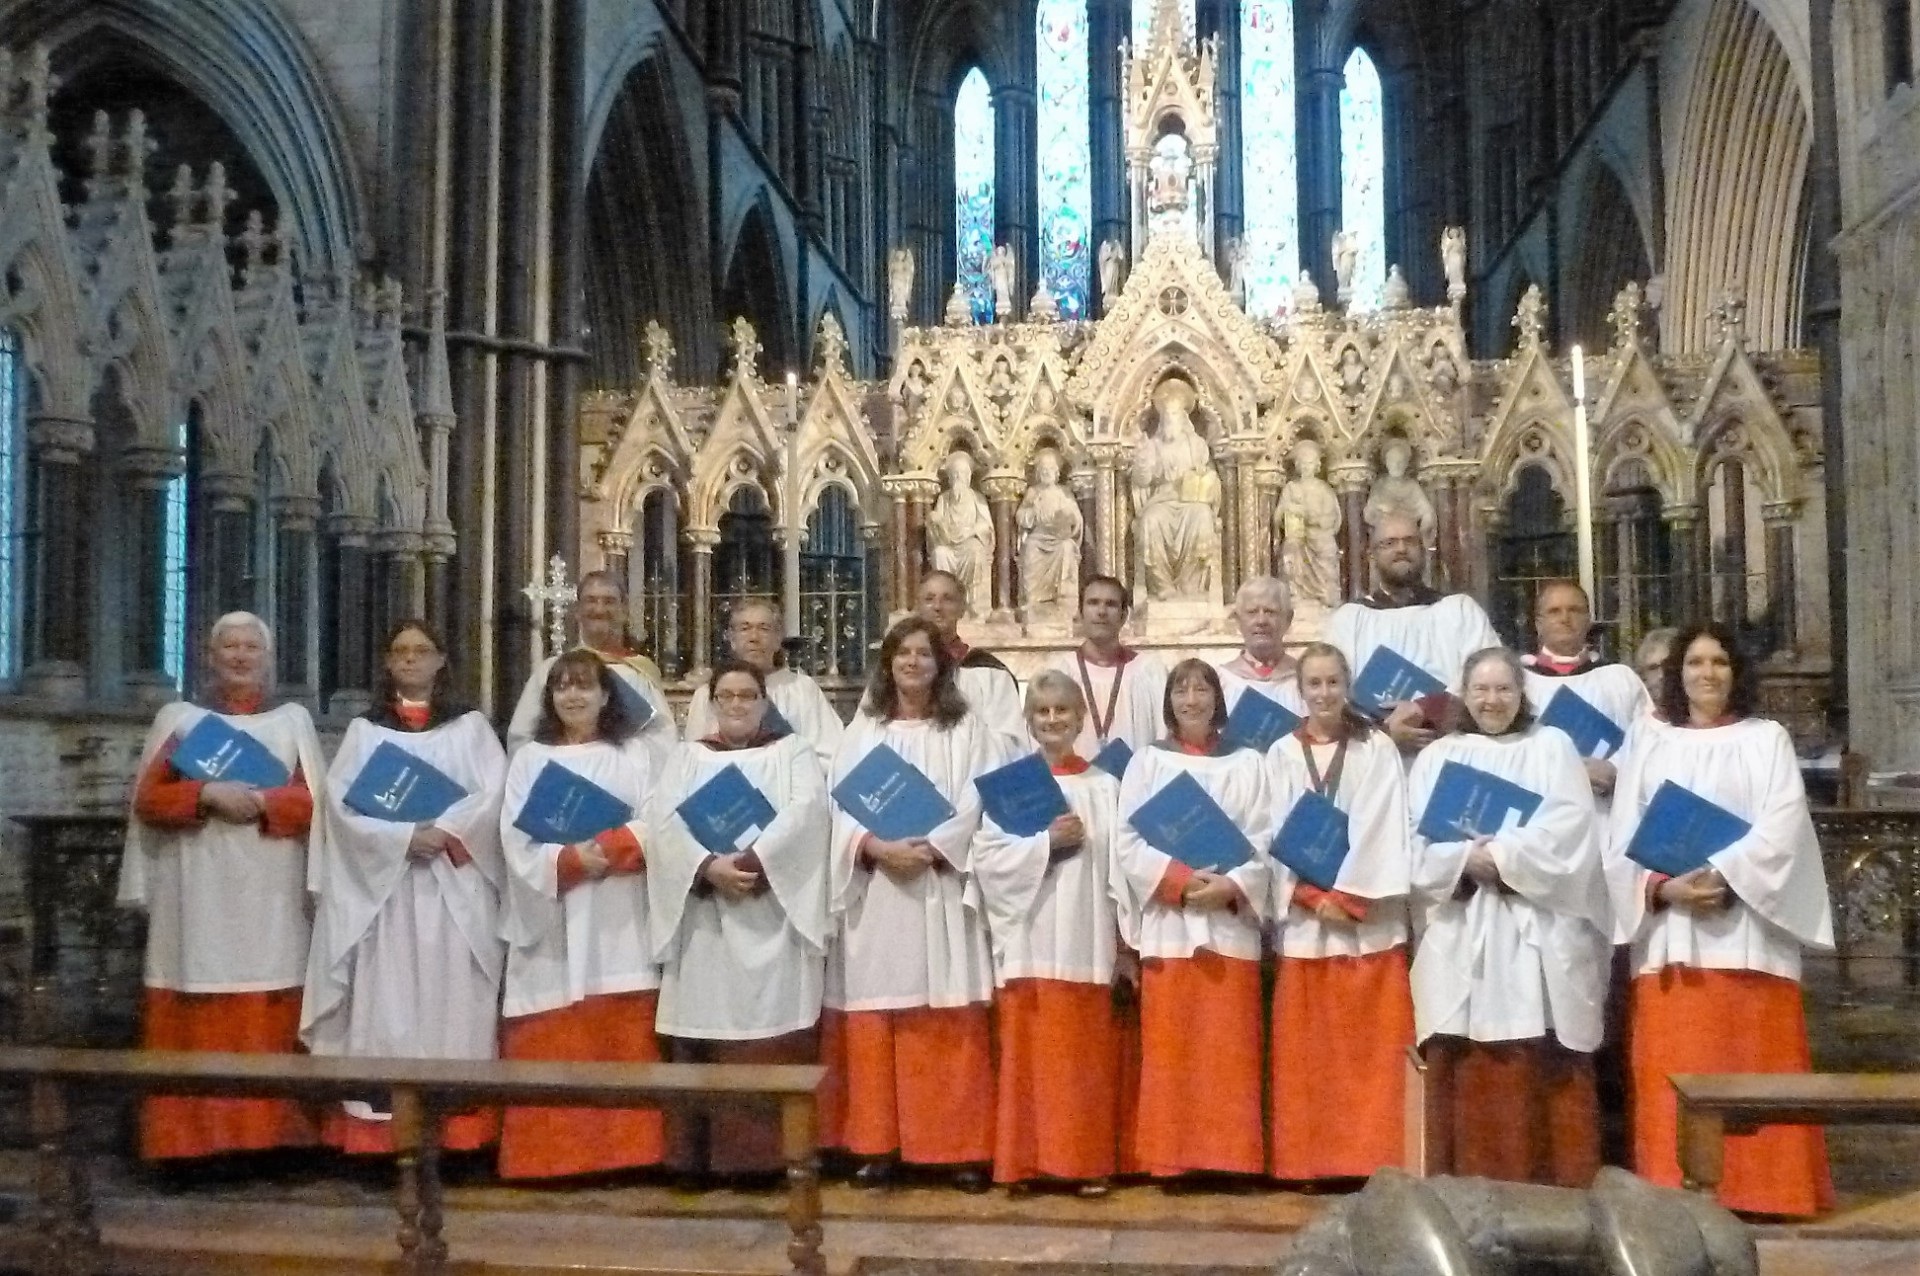 St. Botolph's, Heene, choir at Worcester Cathedral, 26-28 August, 2016